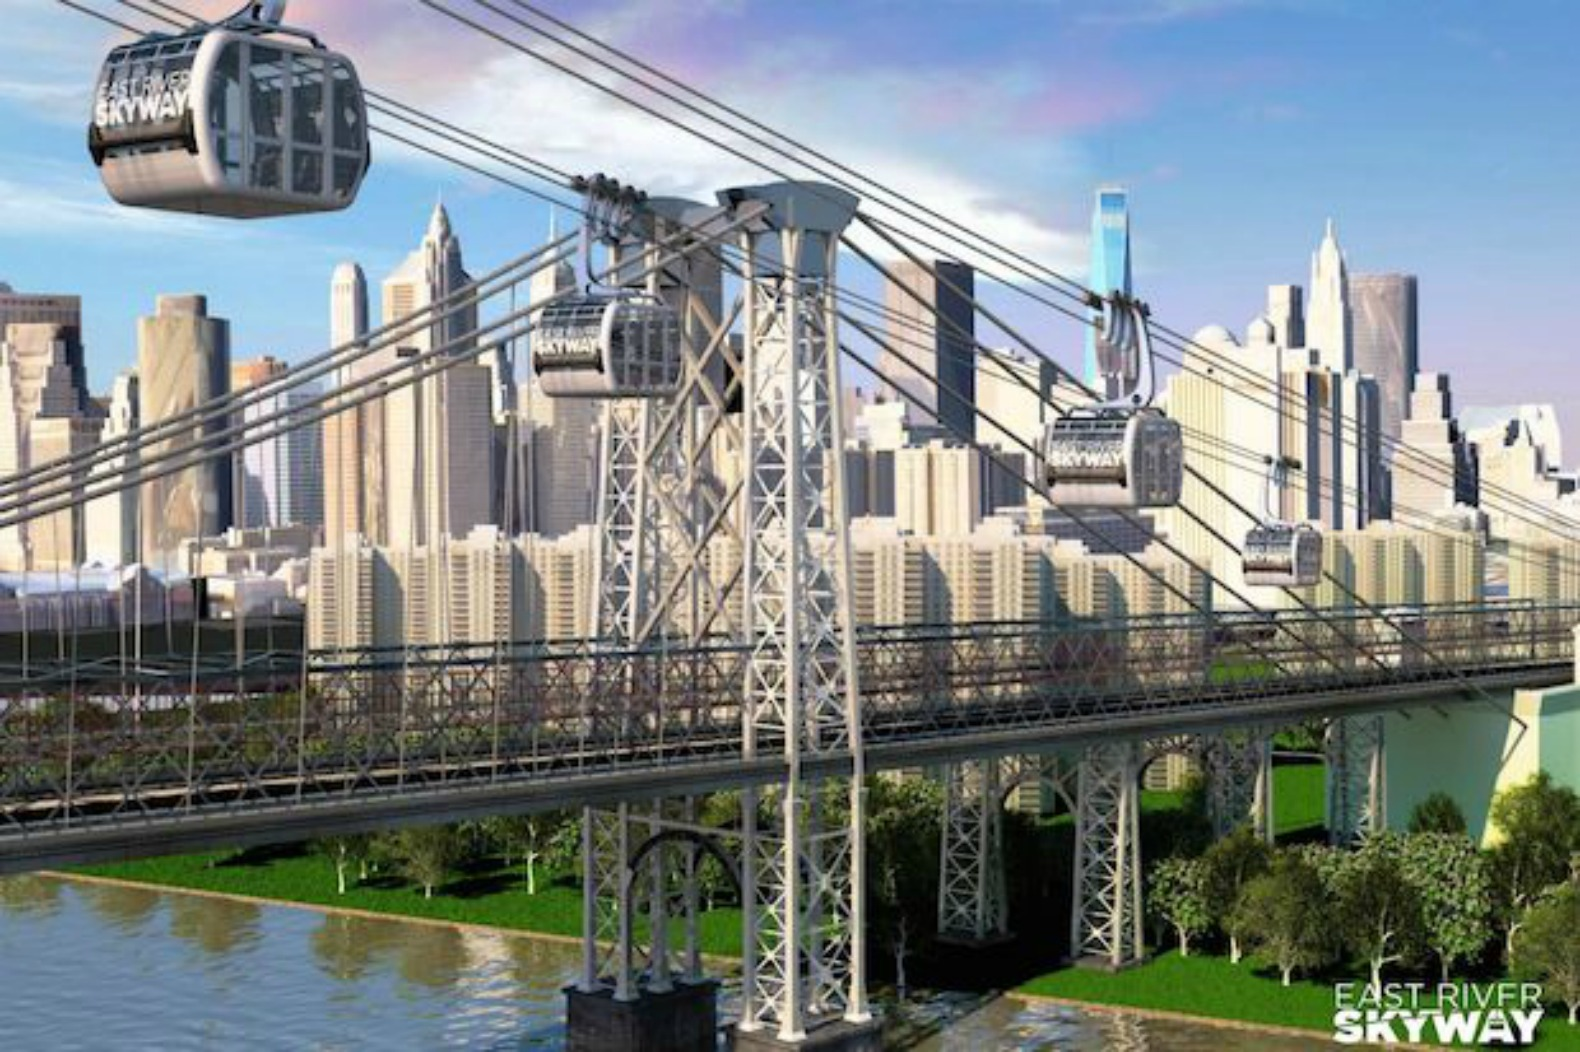 Impending L train shutdown could make way for gondola over East River